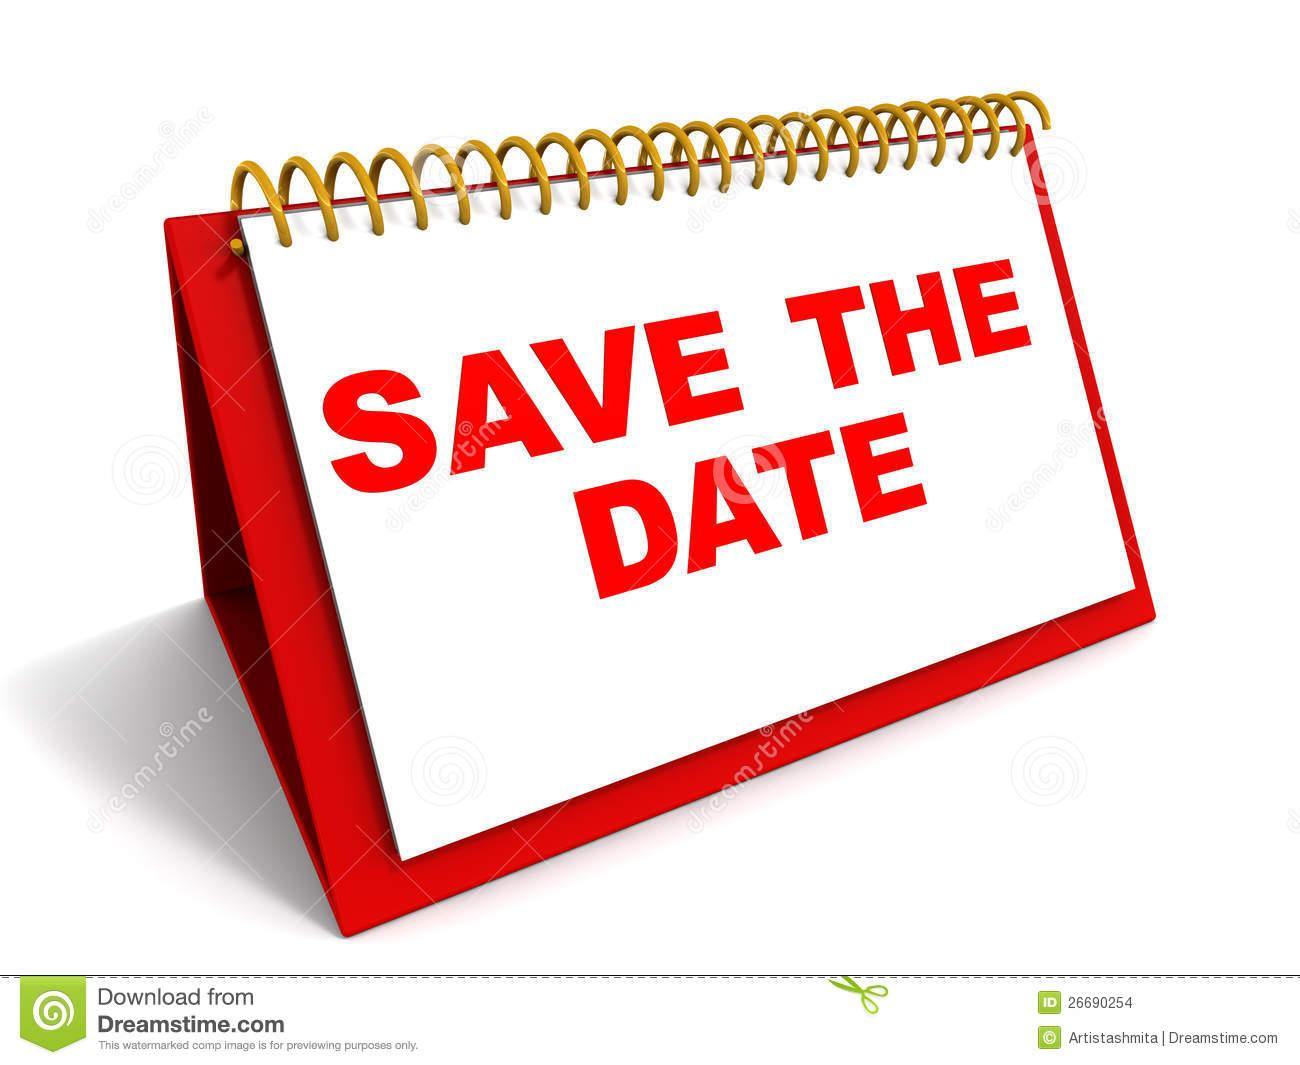 Clip Art Calendar Reminder : Words save the date on a calender in red reminder and